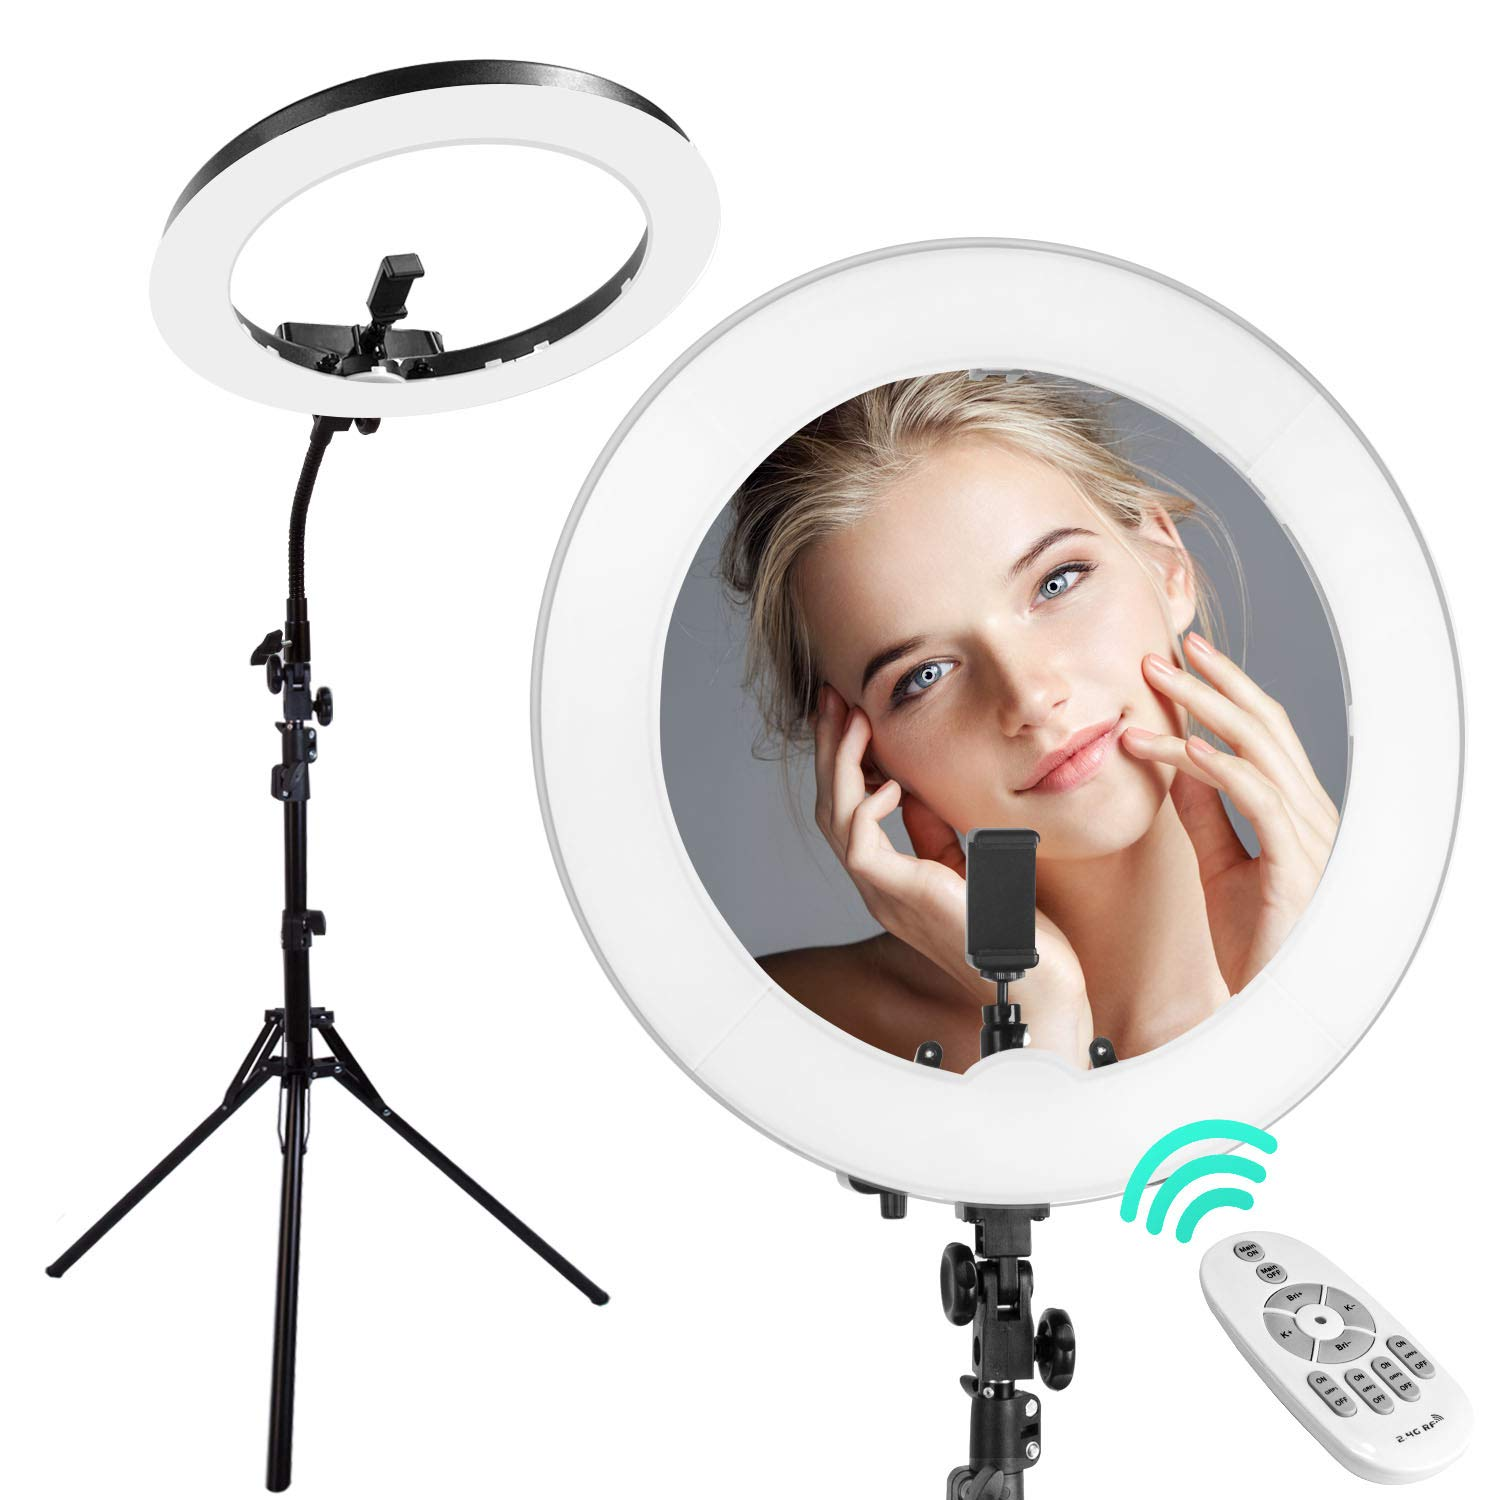 18-inch LED Ring Light with 78 inch Light Stand for Makeup Photography Videography YouTube Facebook